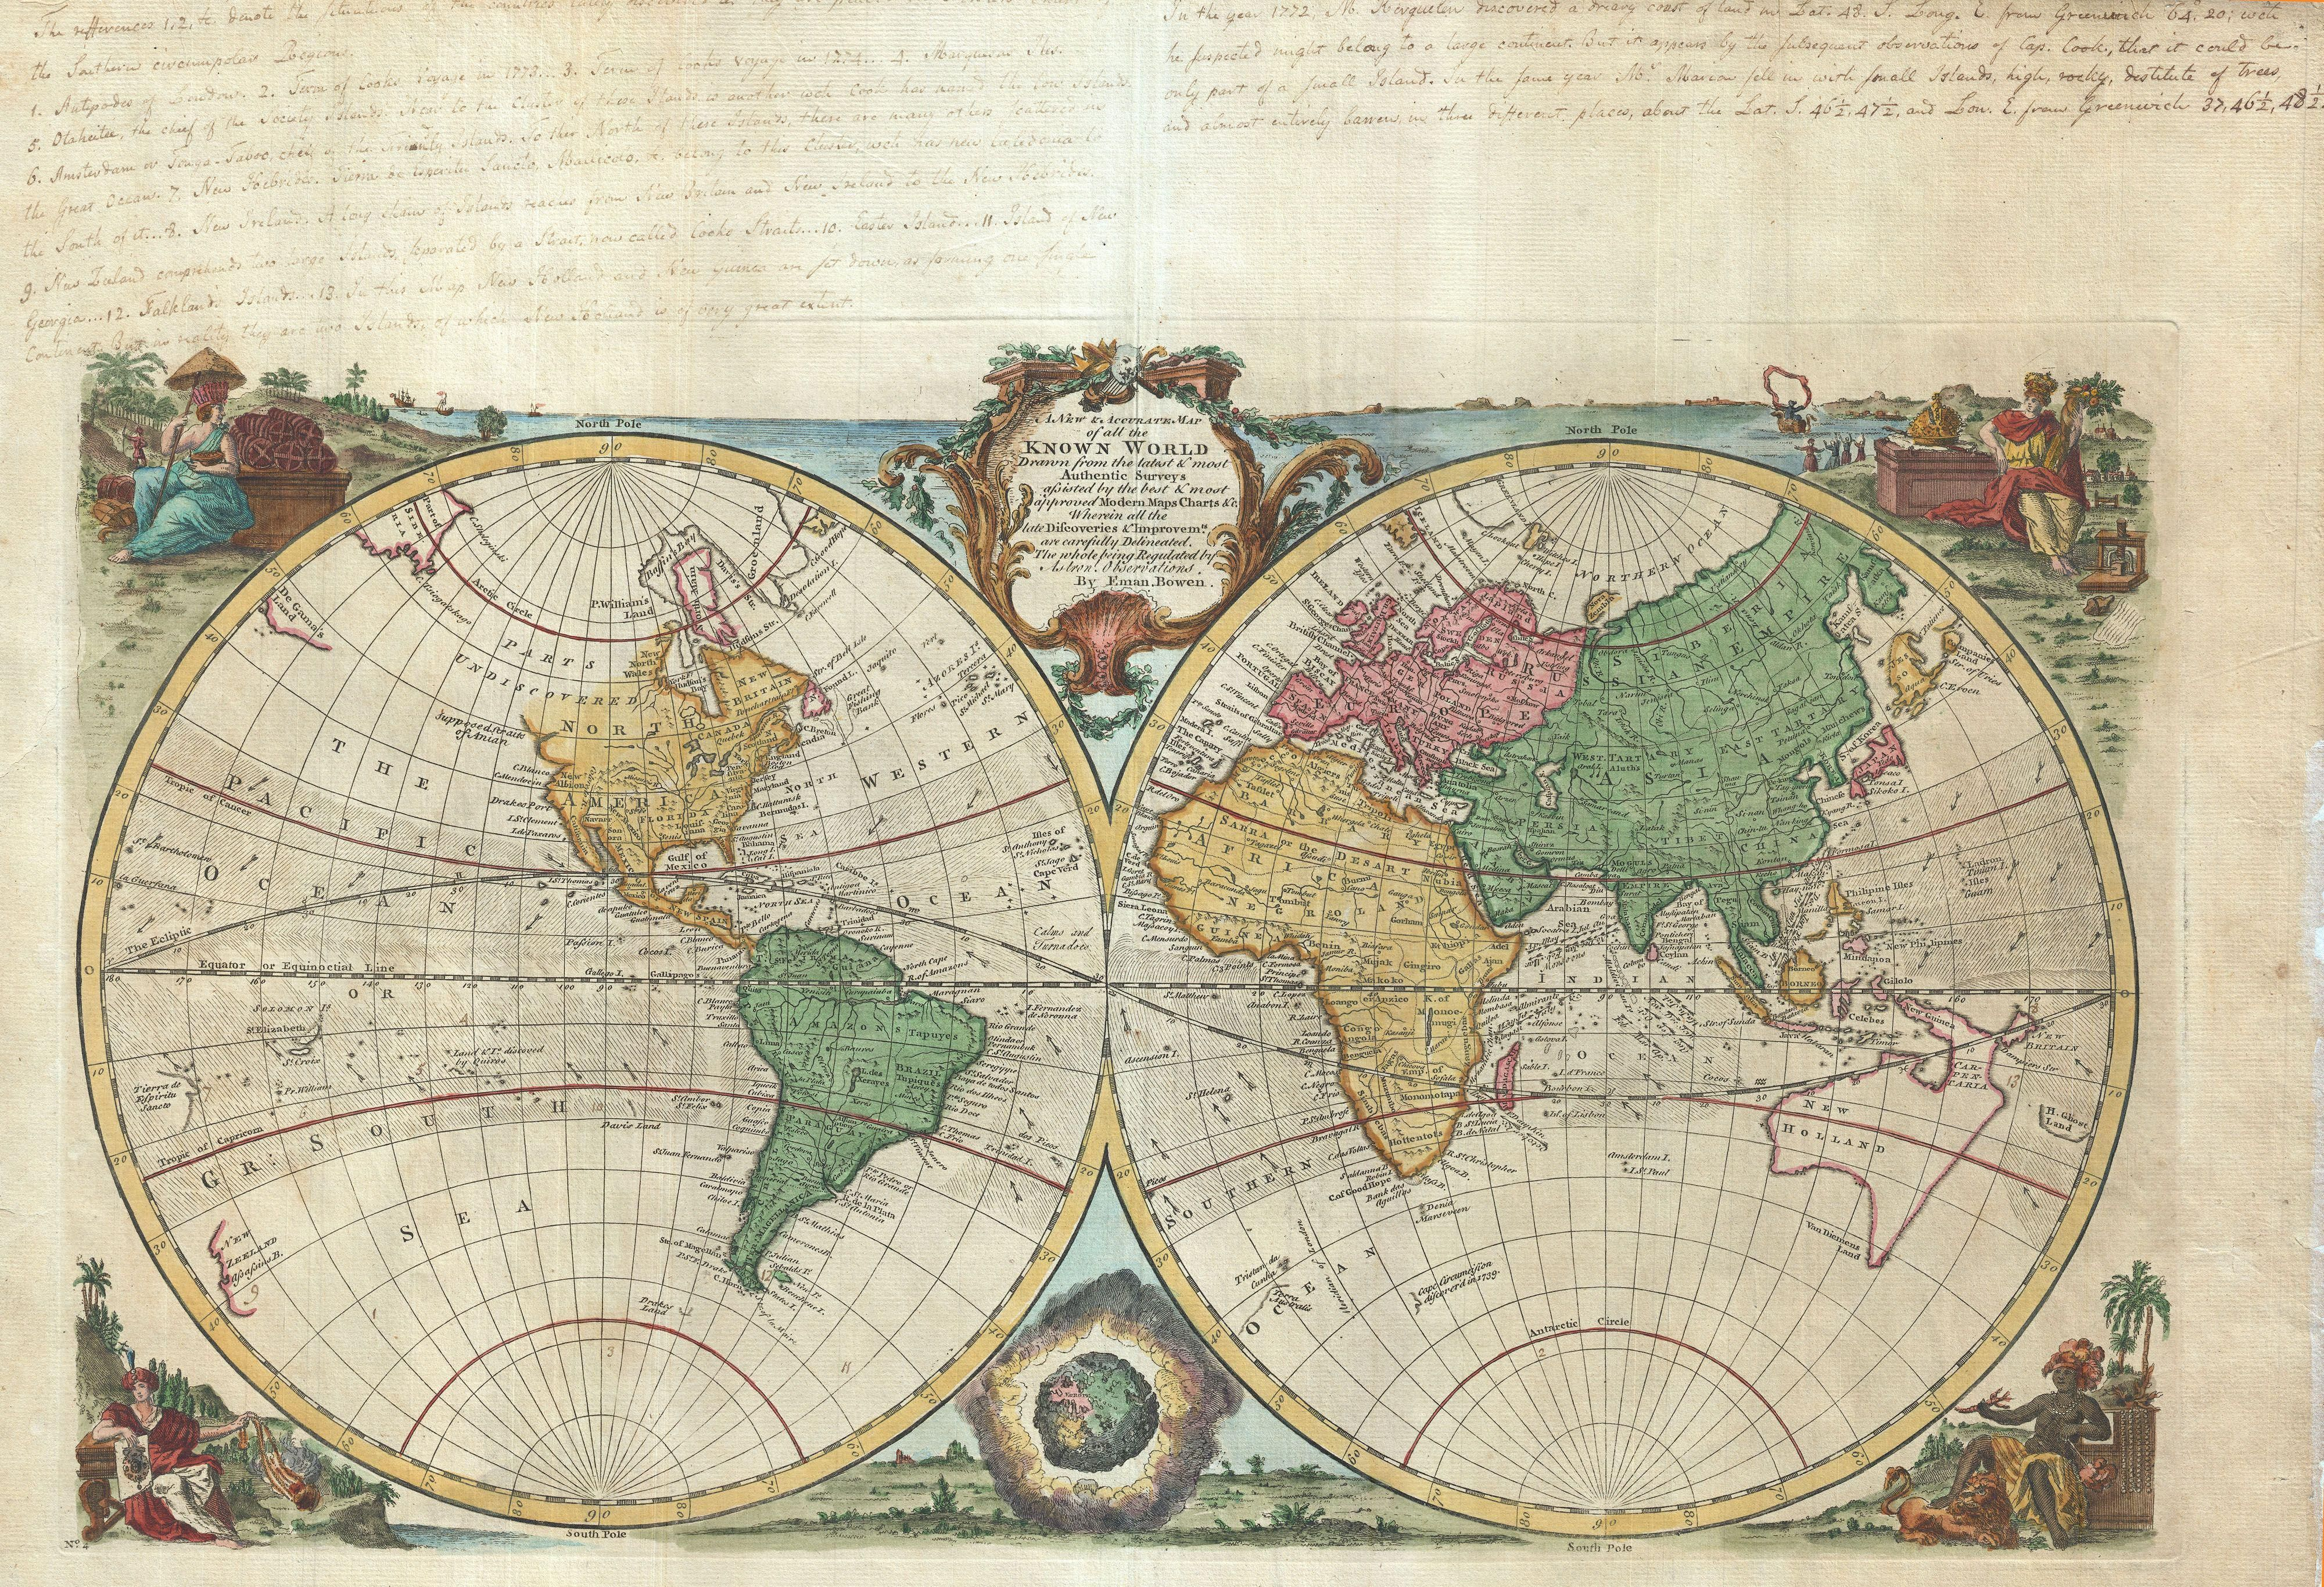 1744 Bowen Map of the World in